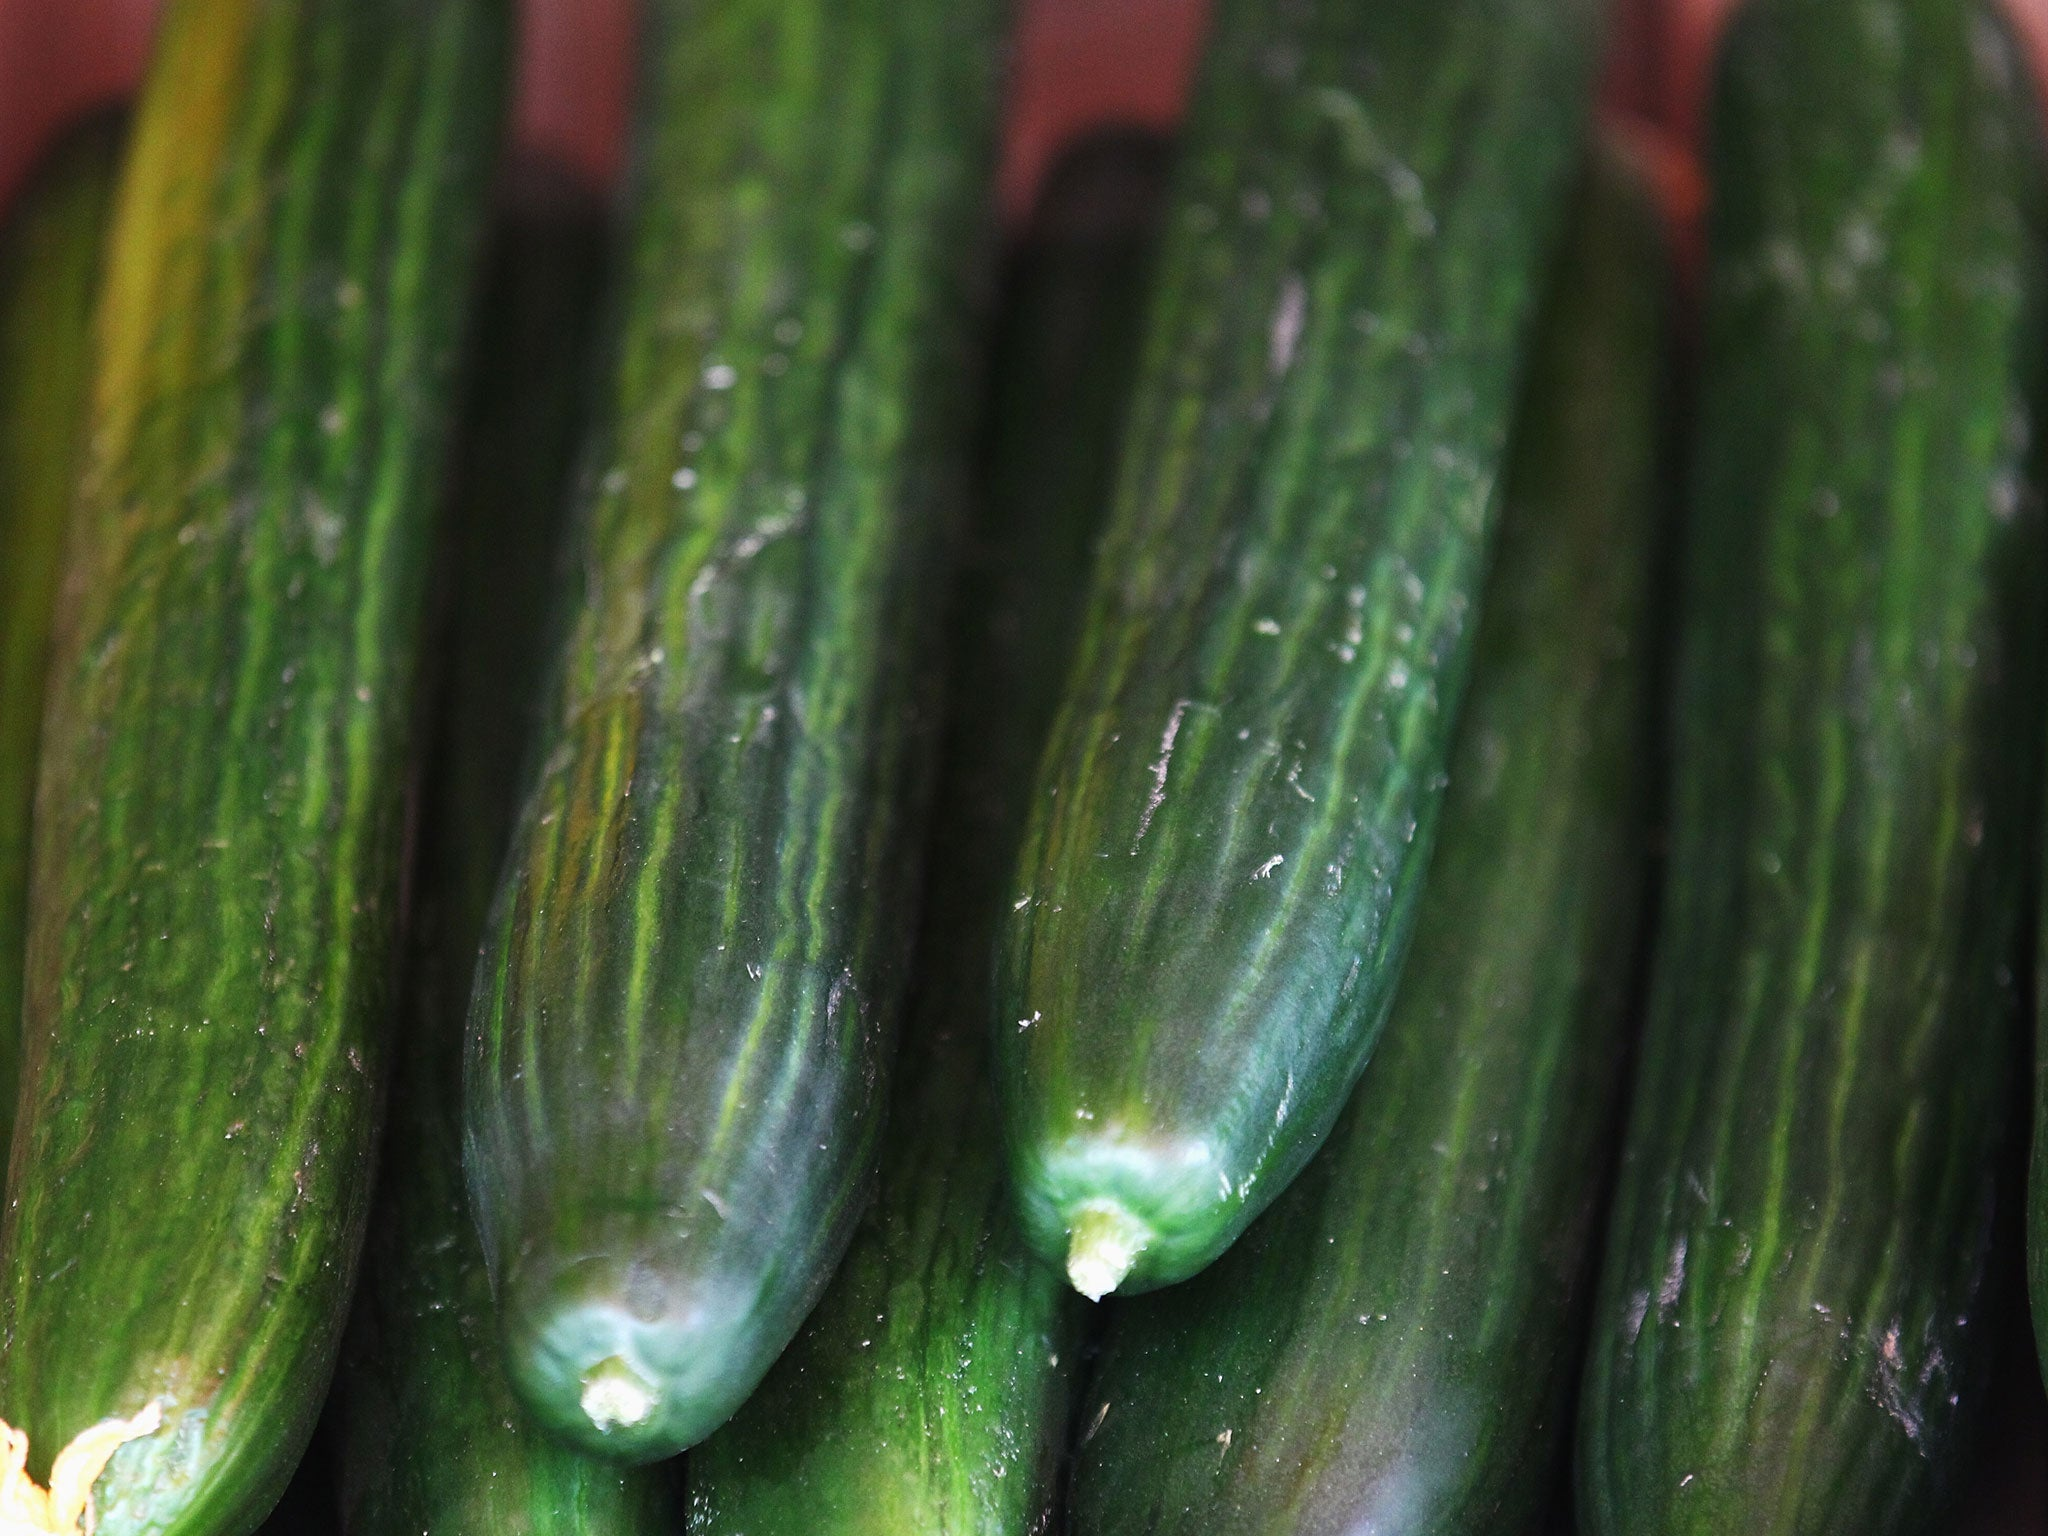 A Man Used a Cucumber As a Sex Toy — And Accidentally Killed His Partner